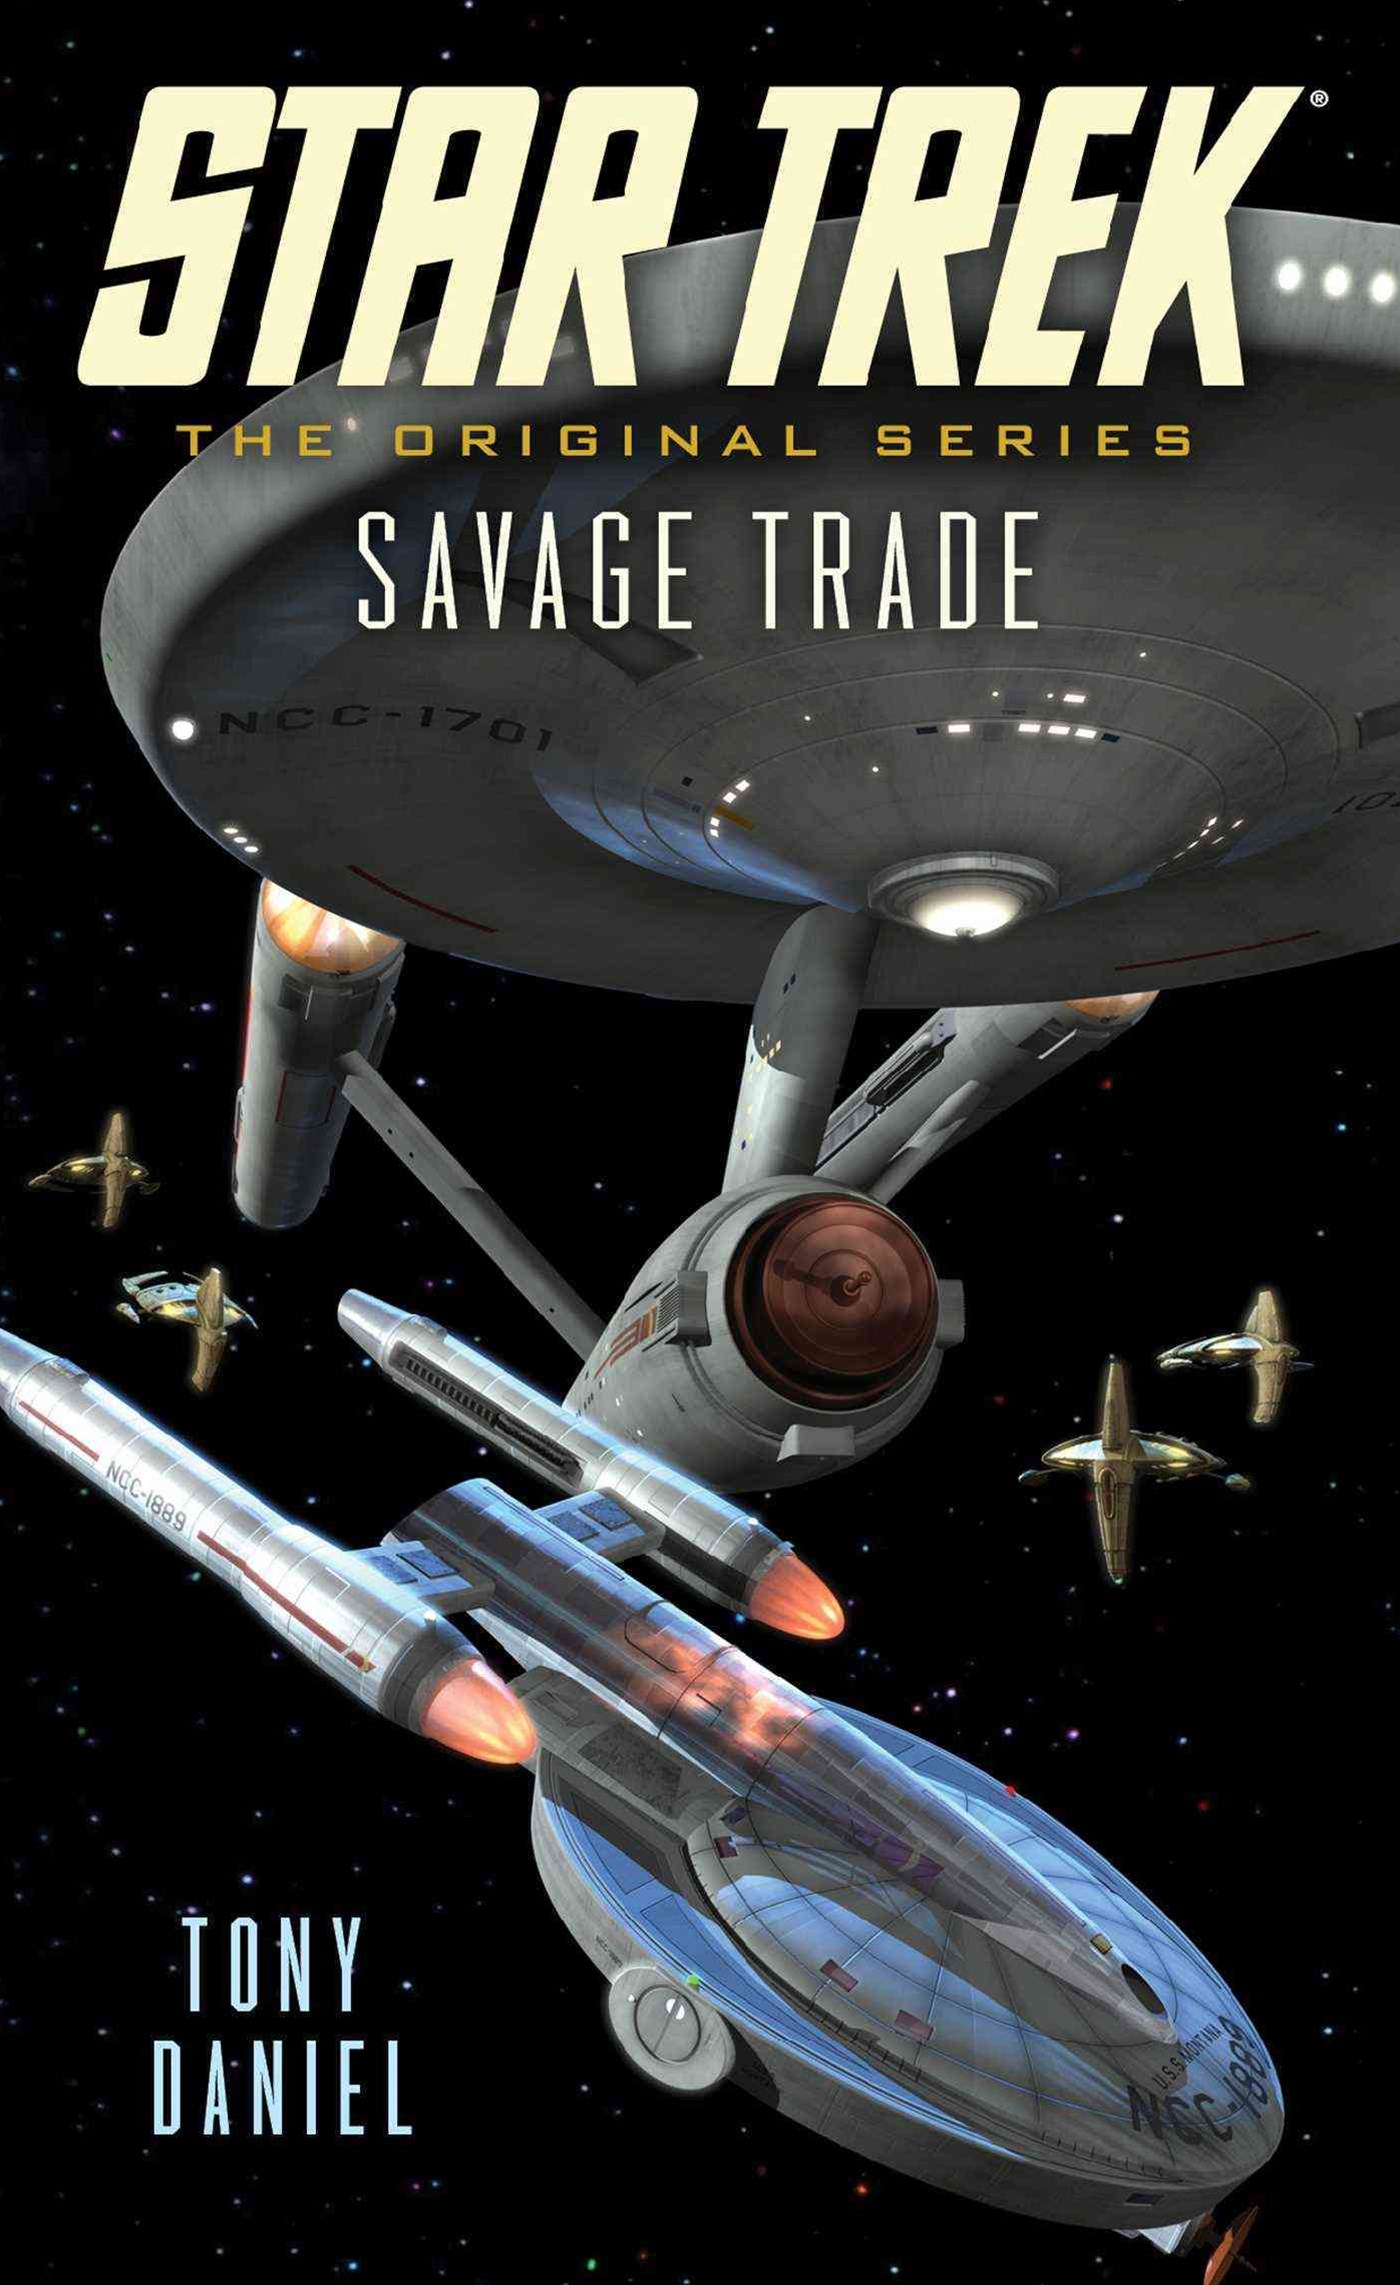 Star Trek: The Original Series: Savage Trade